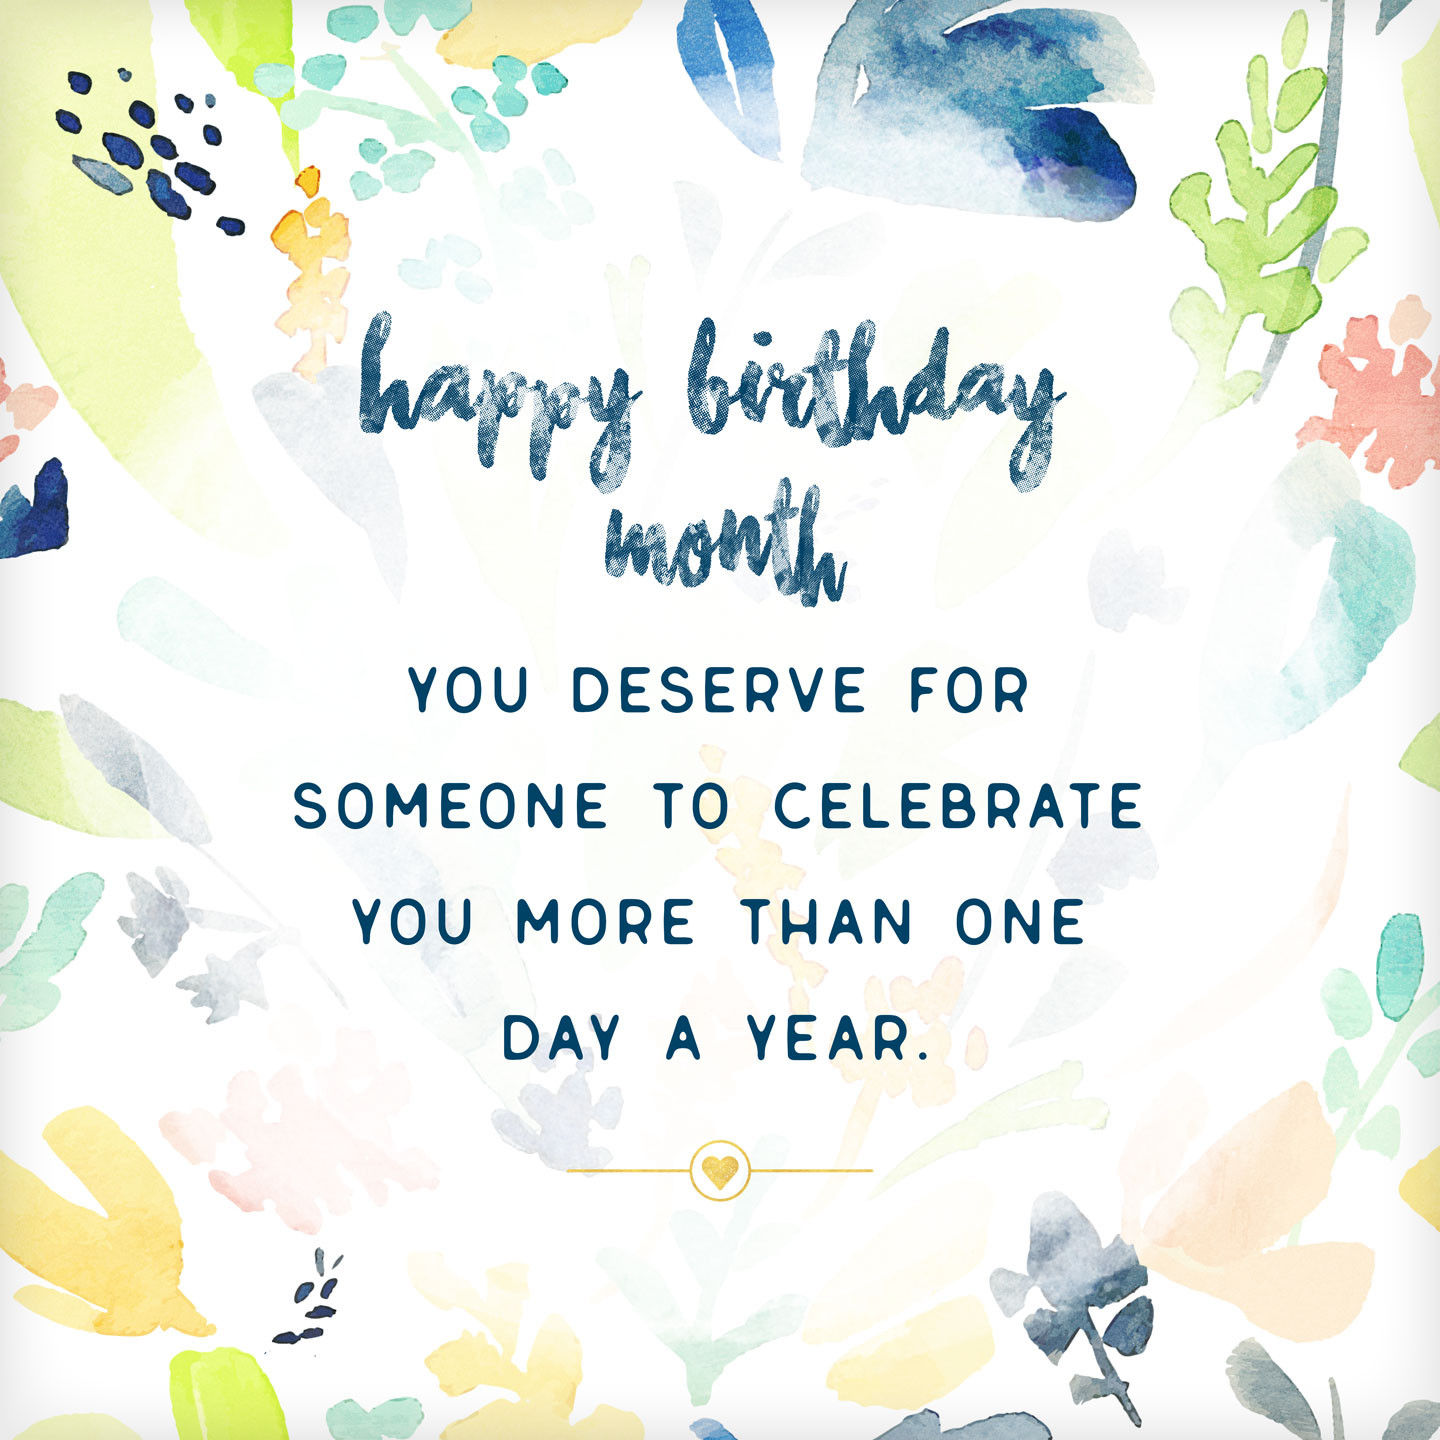 Best ideas about Birthday Wishes Sayings . Save or Pin What to Write in a Birthday Card 48 Birthday Messages and Now.